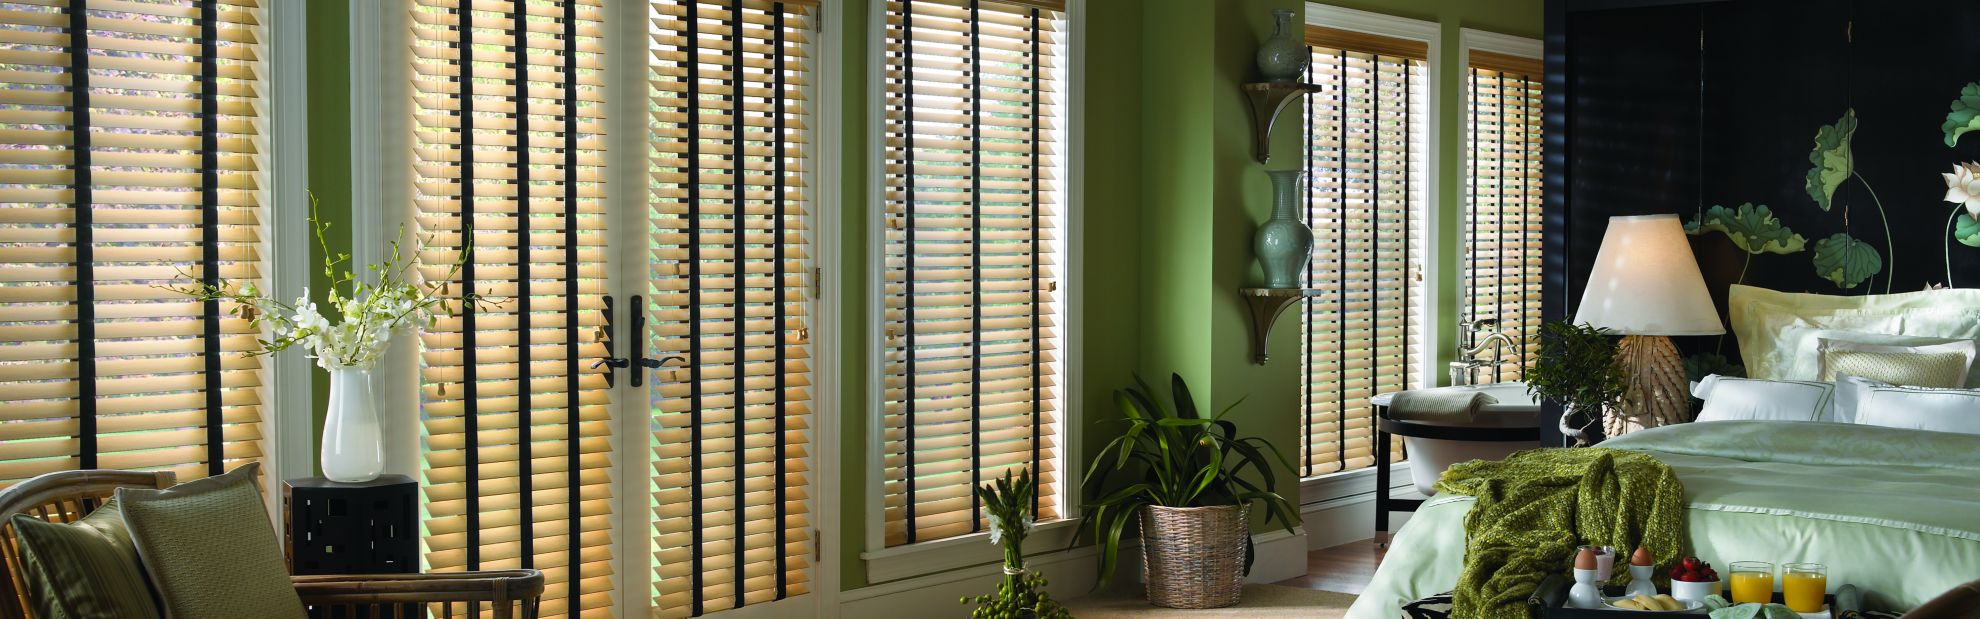 Wood Blinds - Bedroom